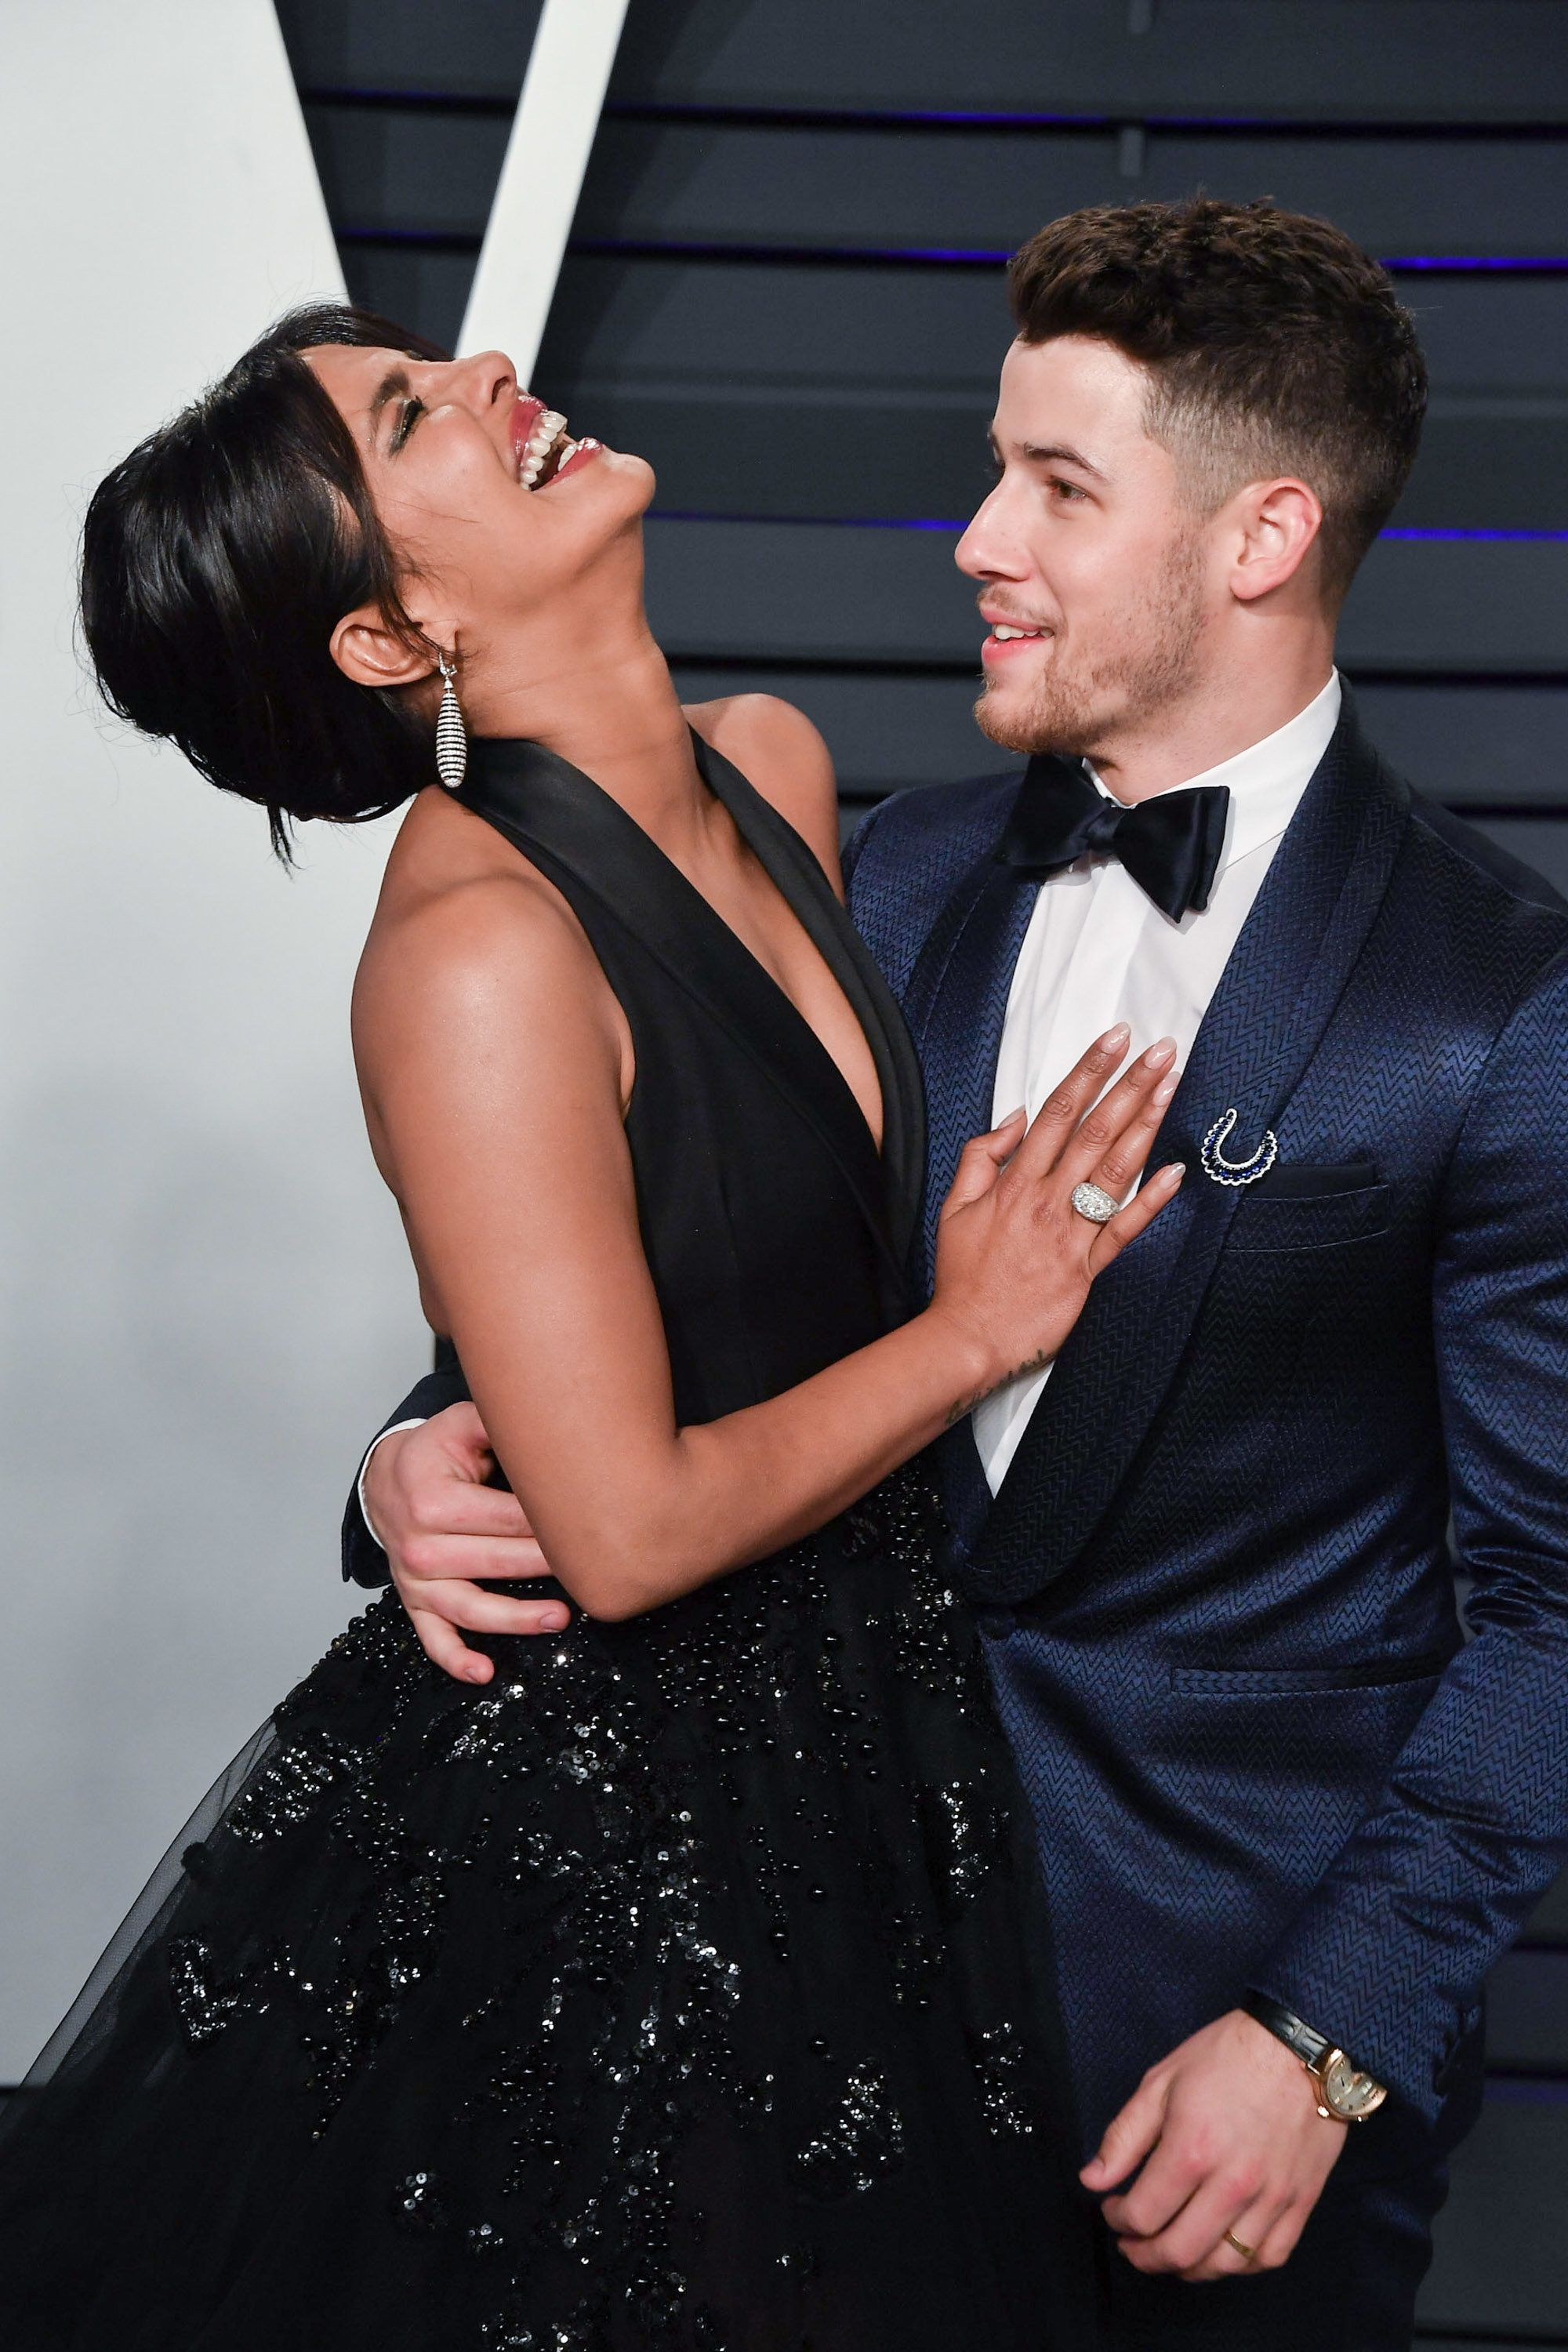 Nick Jonas On Priyanka Chopra: We Look Out For Each Other In Every